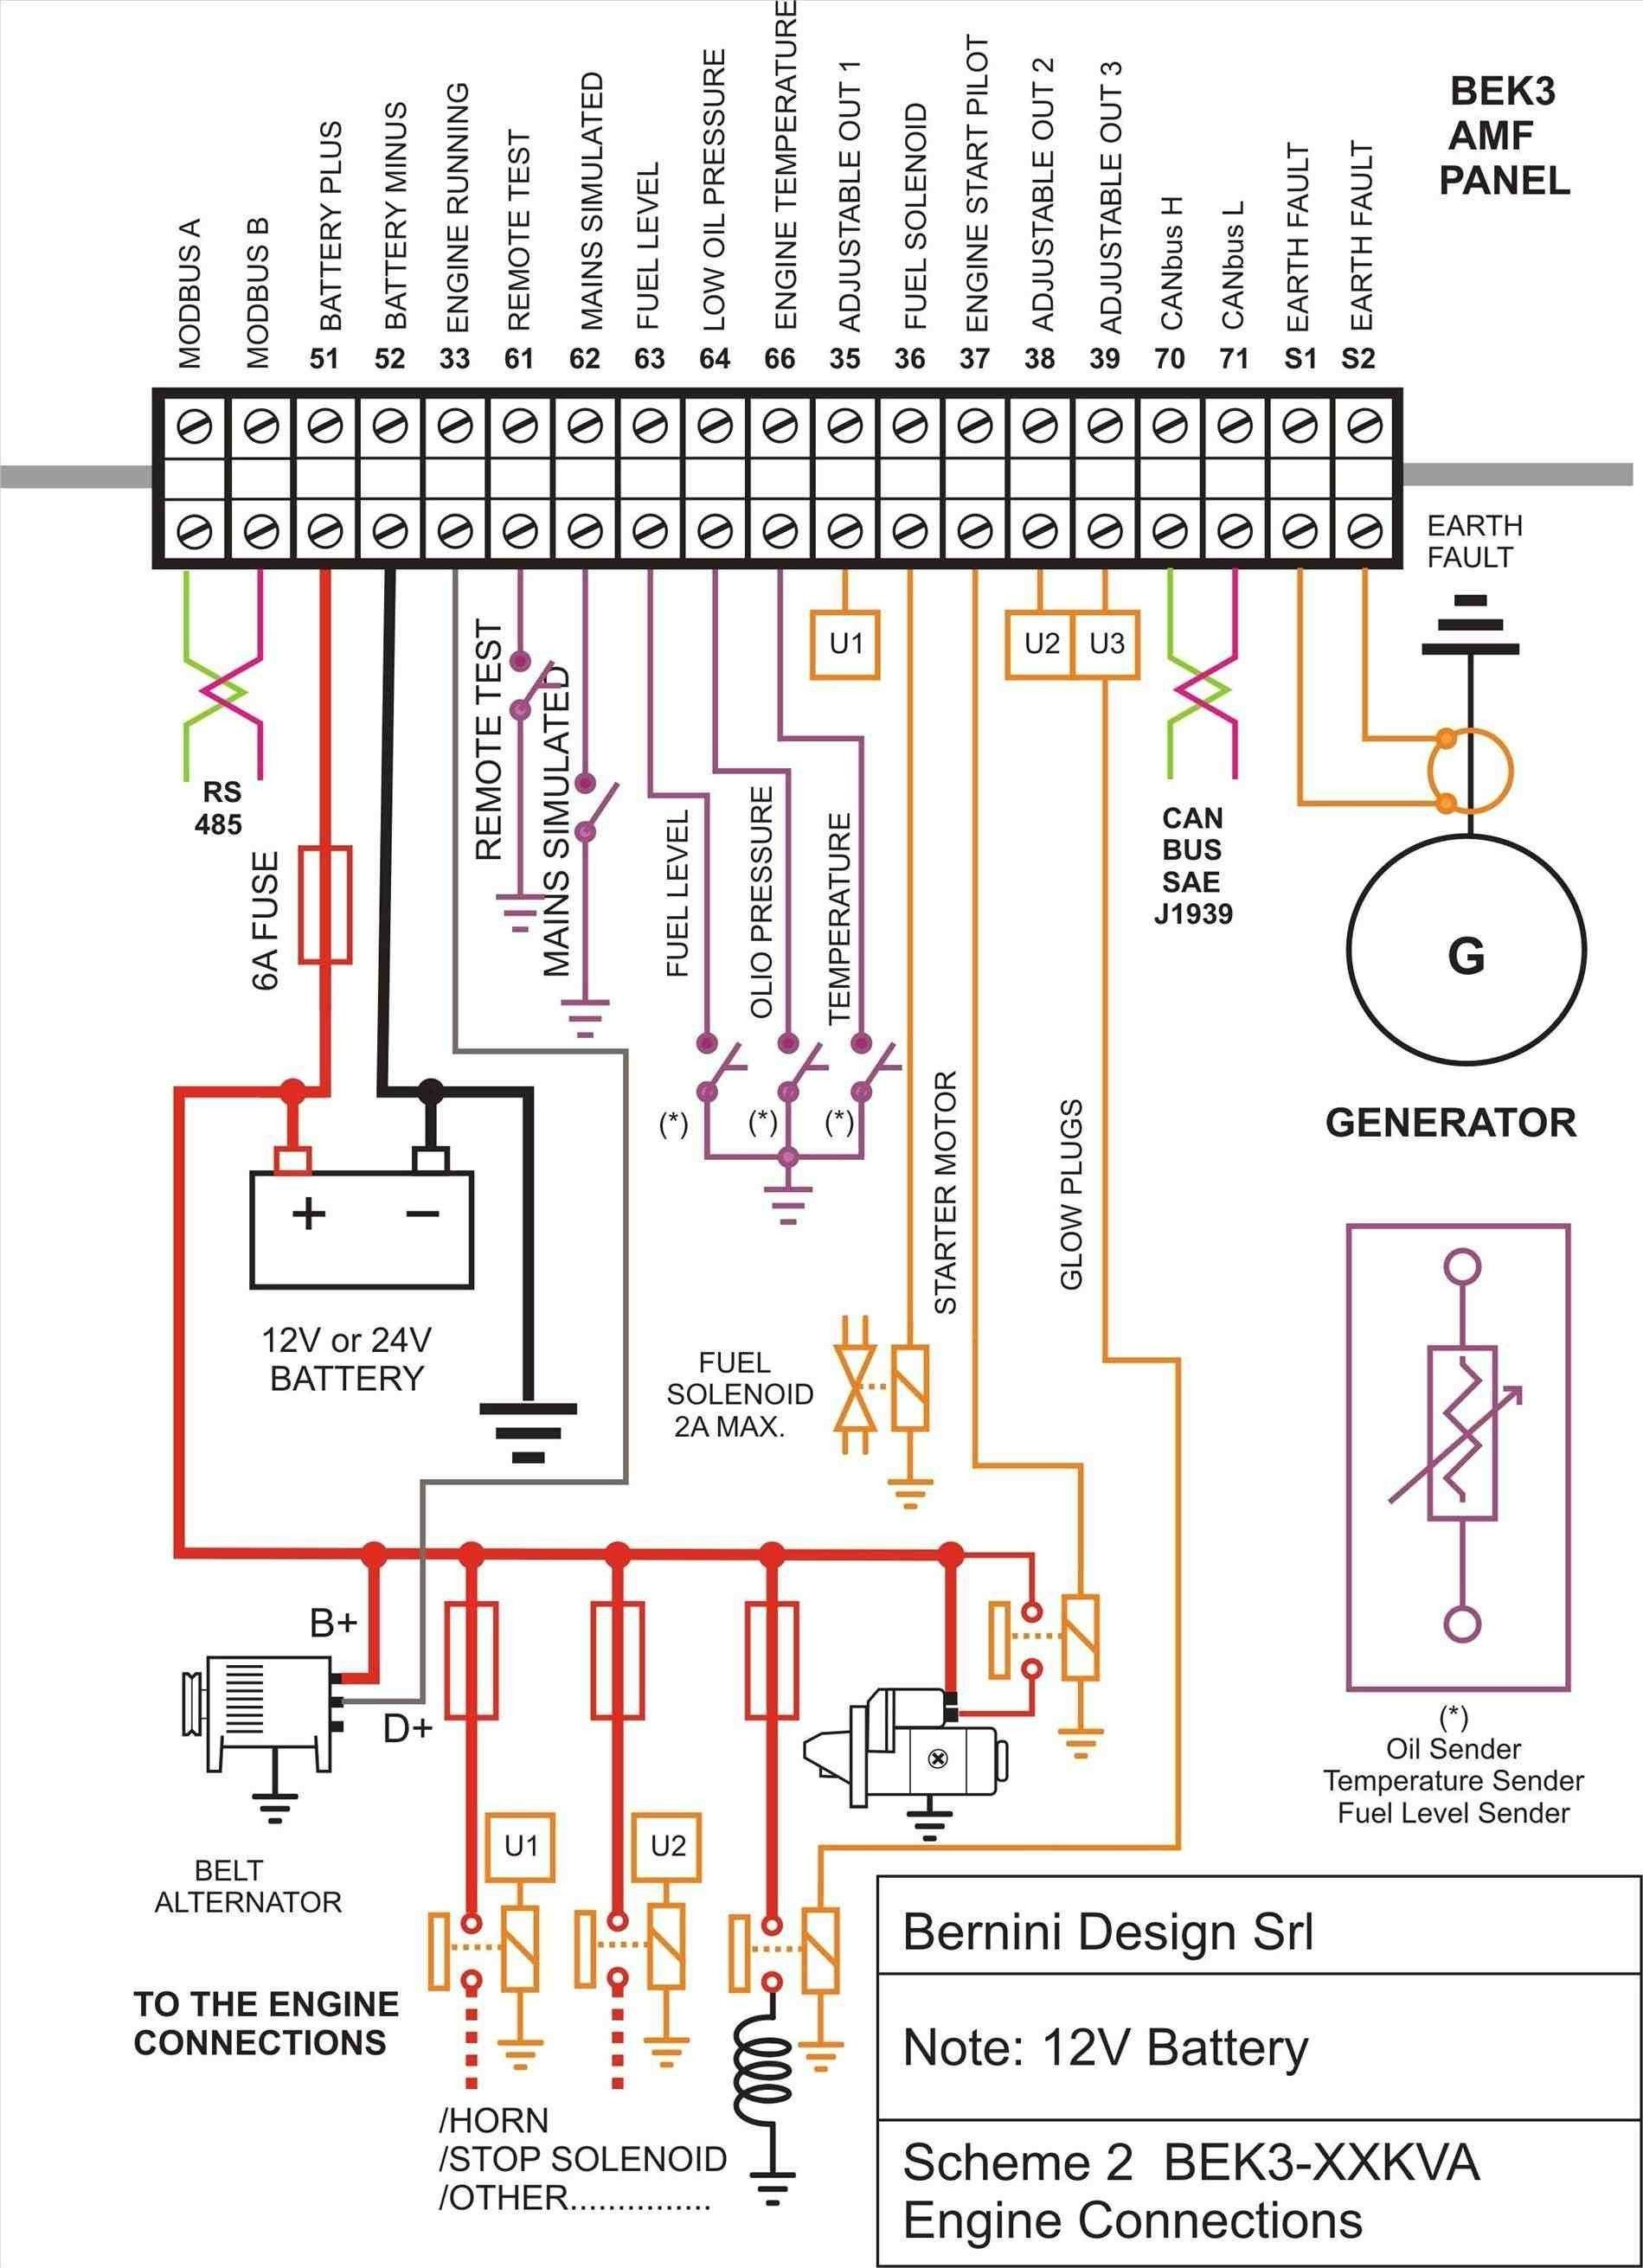 wiring circuit diagrams pdf 2 3 stromoeko de u2022house wiring circuit diagram pdf fresh typical [ 1899 x 2622 Pixel ]